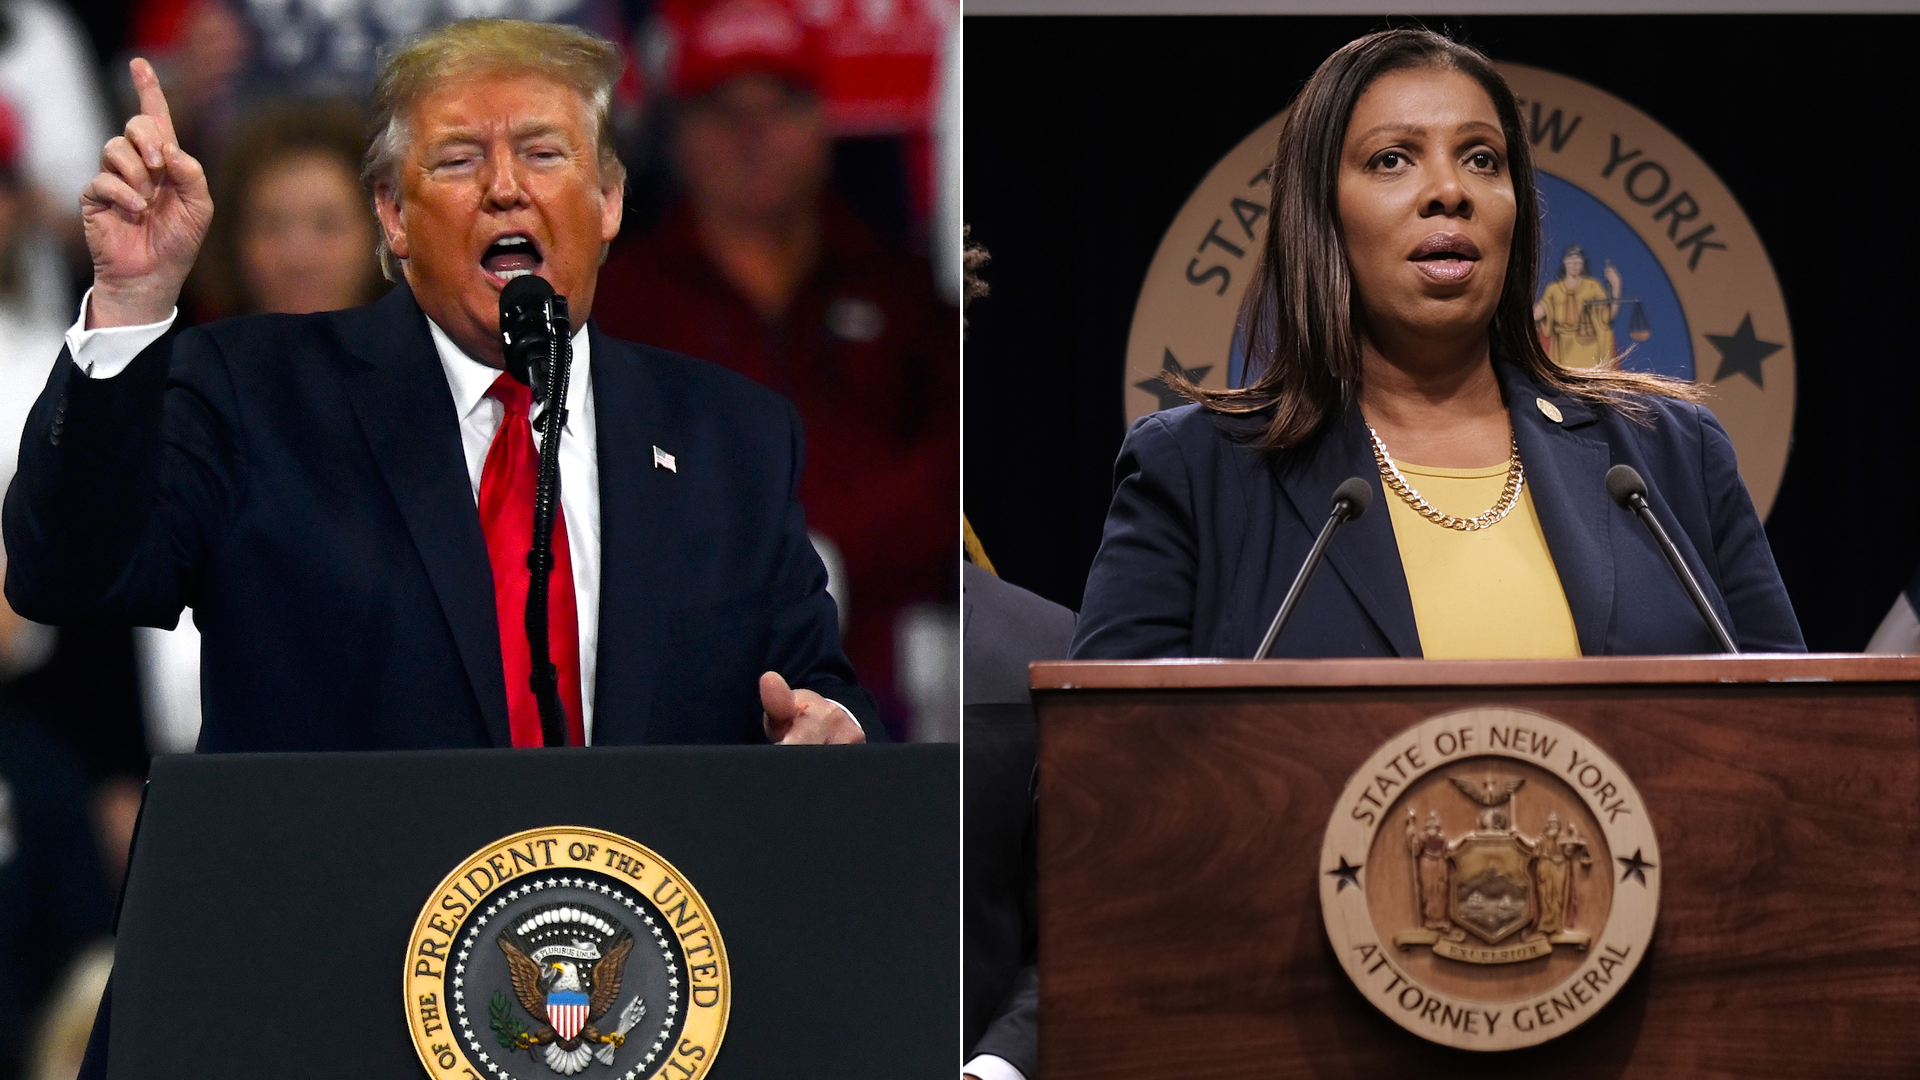 Donald Trump, left, speaks at a campaign rally on Dec. 10, 2019 in Hershey, Pennsylvania. New York State Attorney General Letitia James, right, holds a news conference Nov. 19, 2019 in New York City. (Credit: Mark Makela/Spencer Platt/Getty Images)